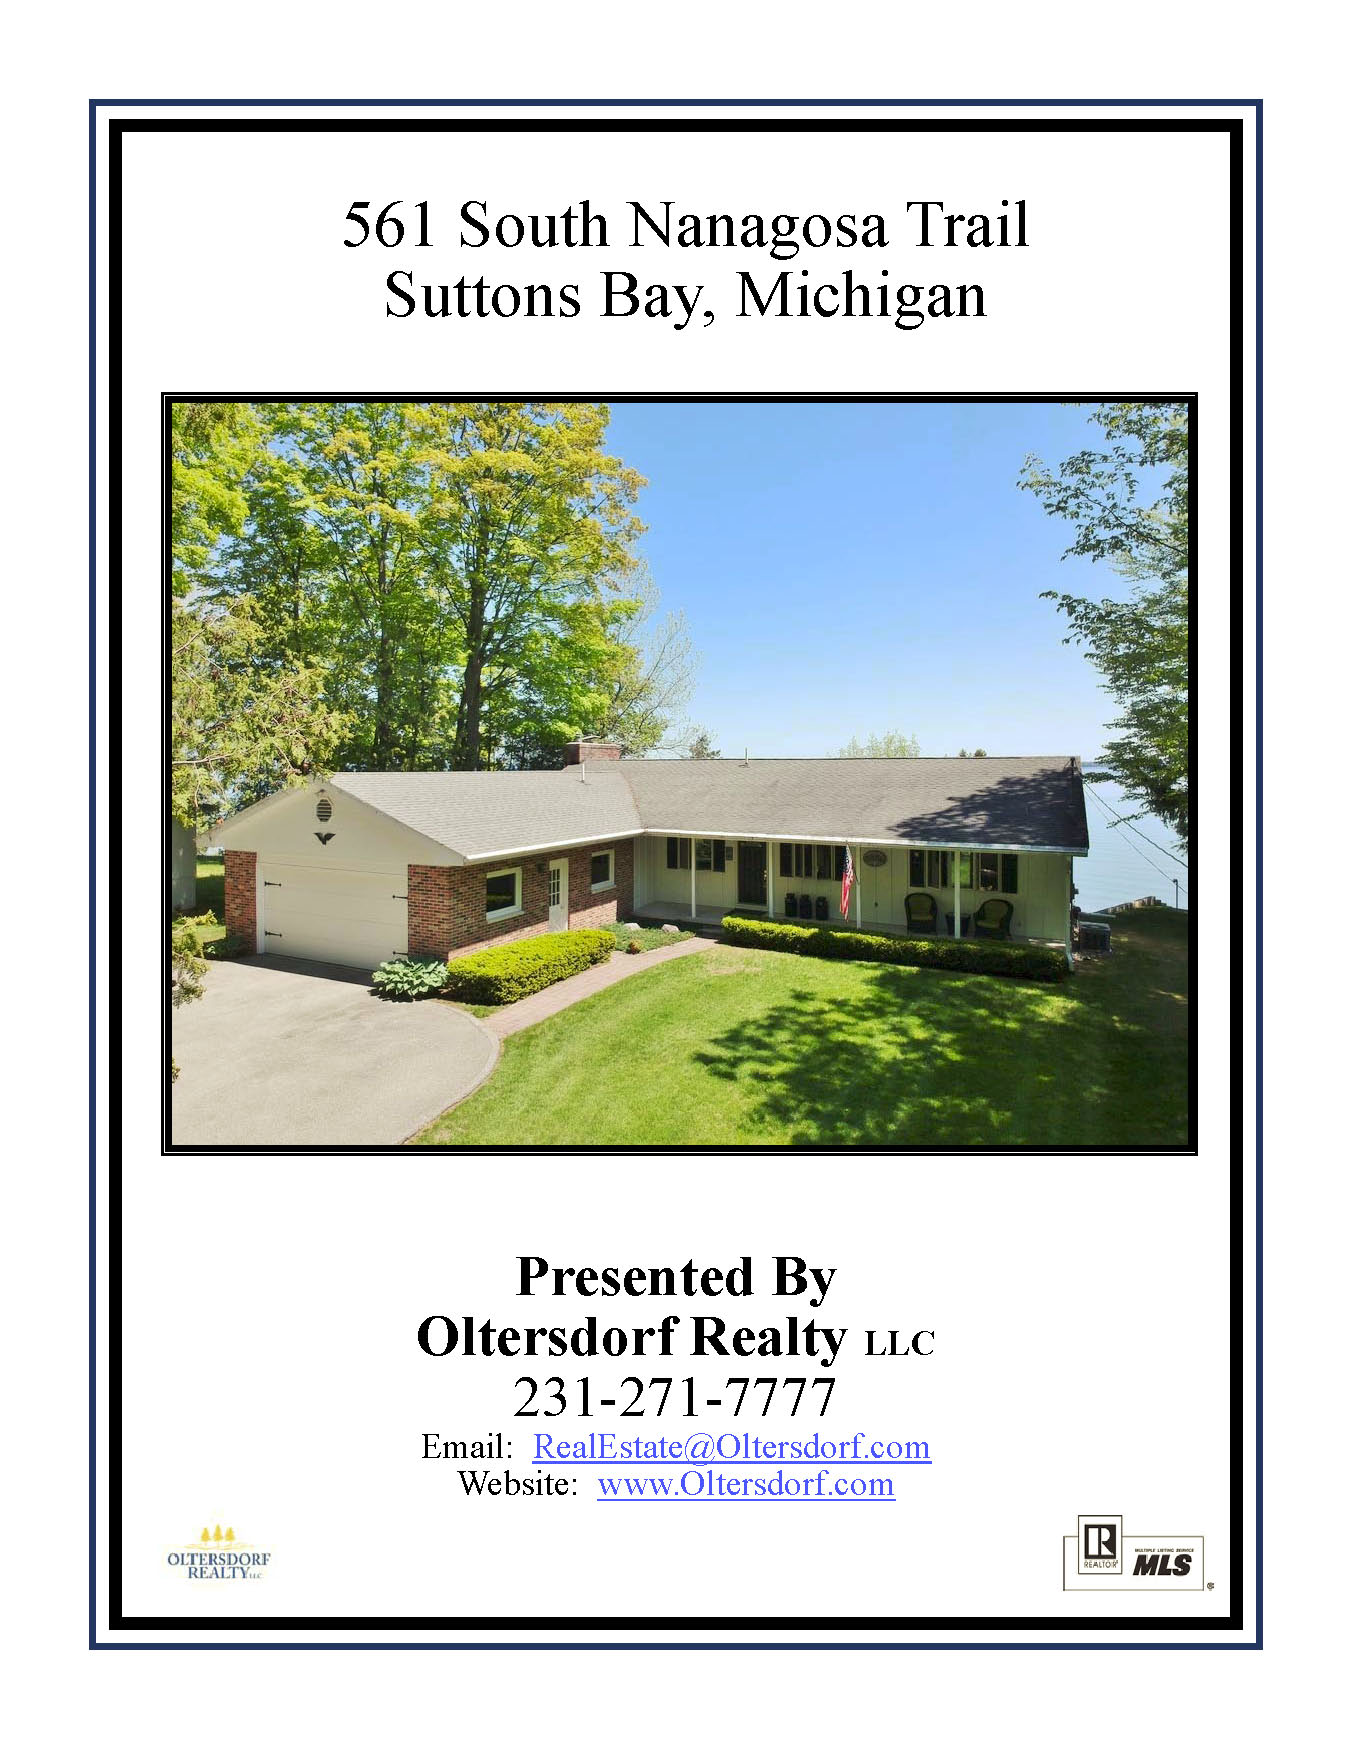 561 S Nanagosa Trail, Suttons Bay – FOR SALE by Oltersdorf Realty - Marketing Packet (1).jpg